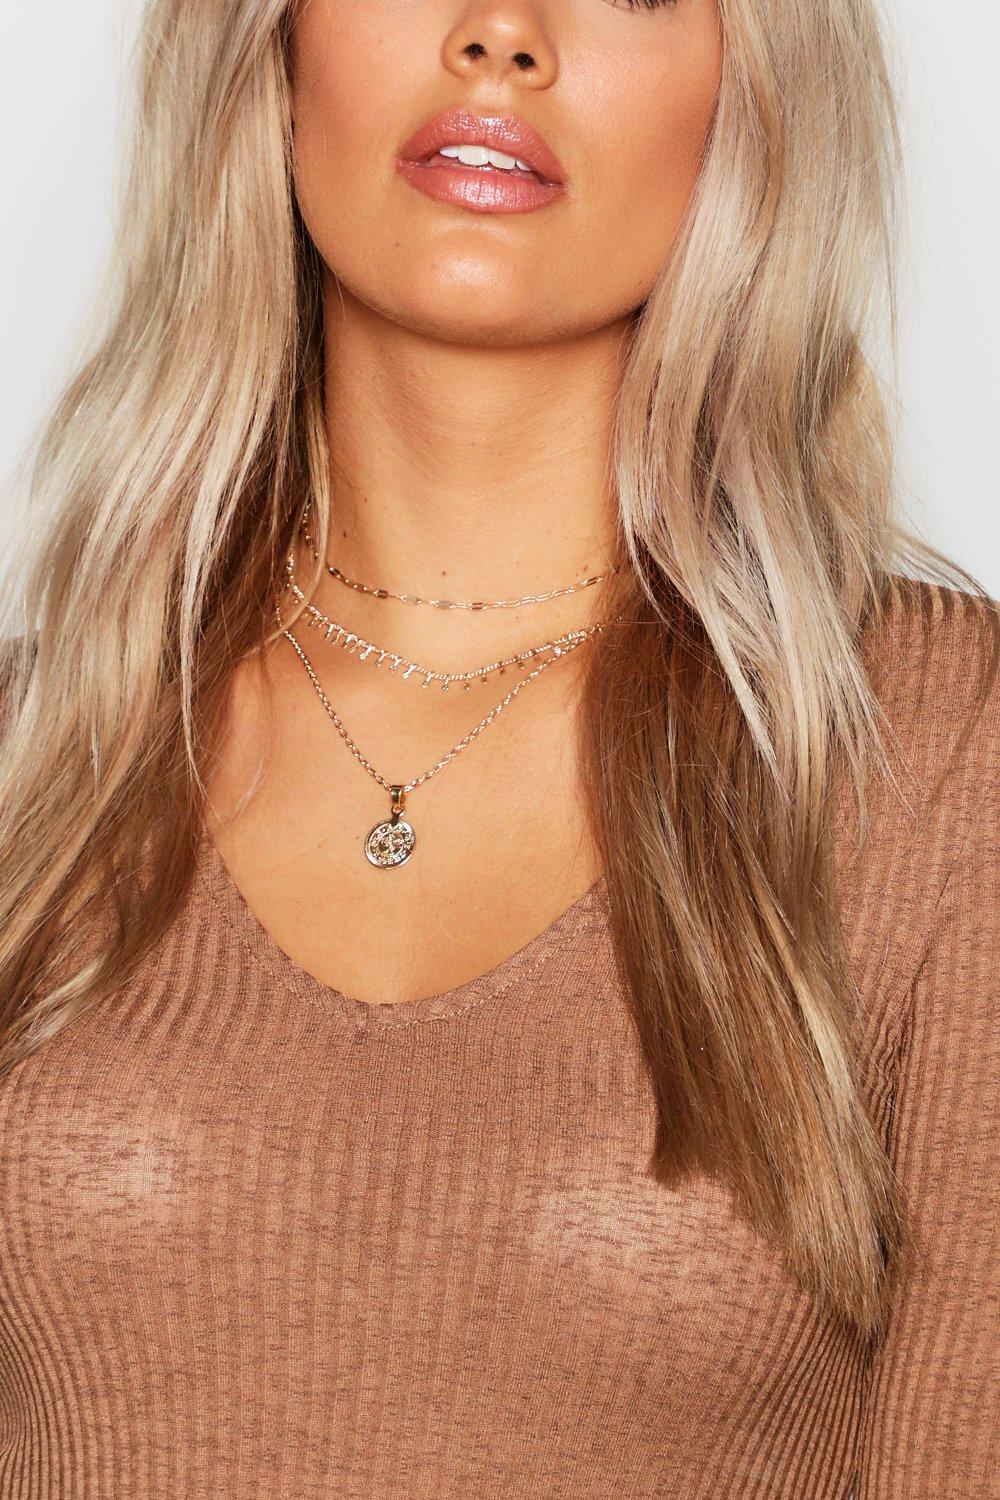 Plus Coin Pendent Layered Choker Necklace